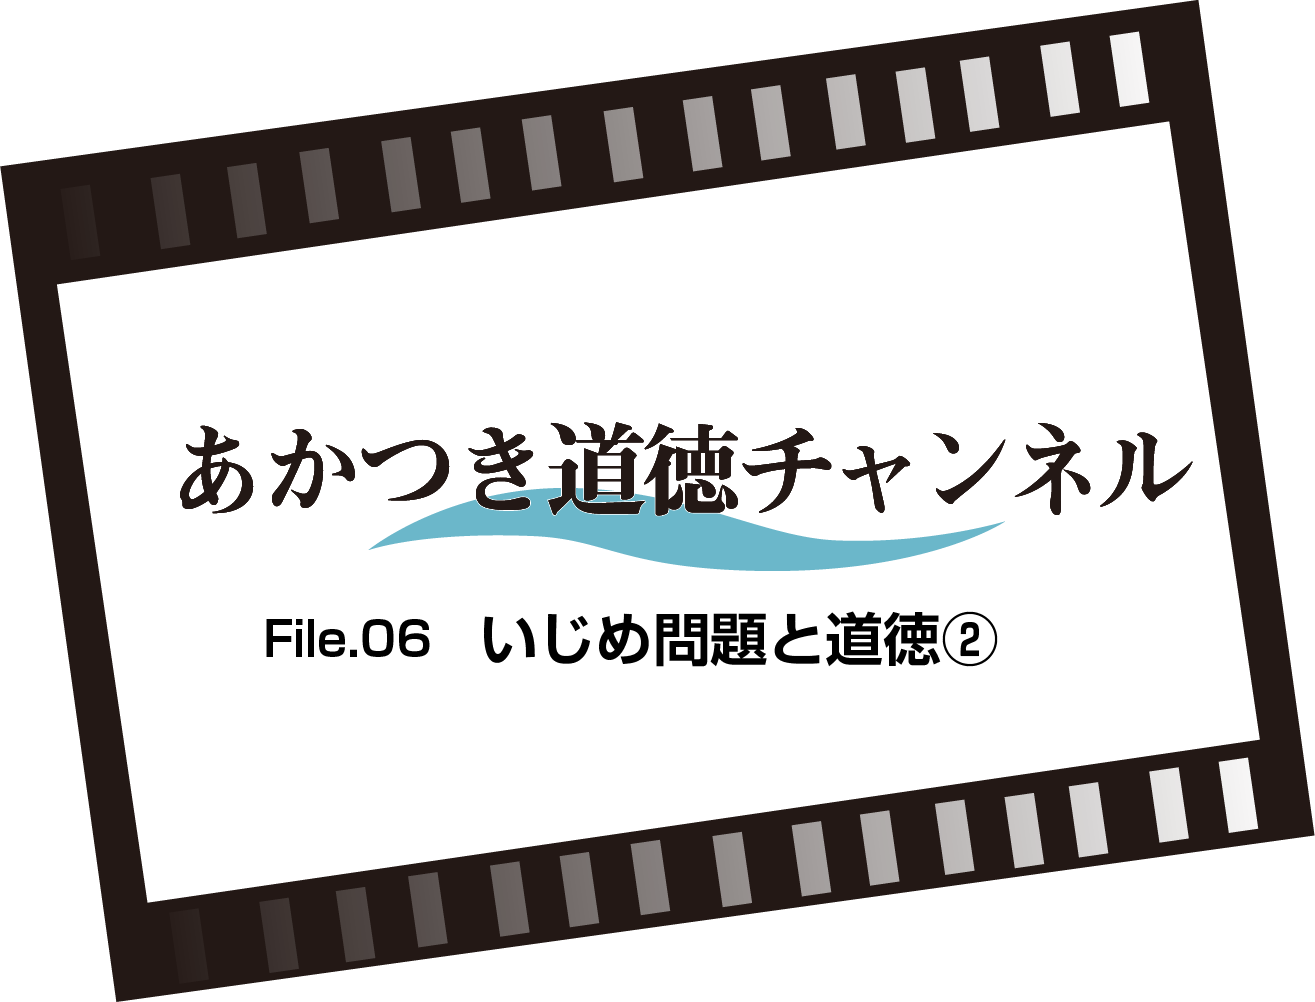 File.06 いじめ問題と道徳②(2:40)